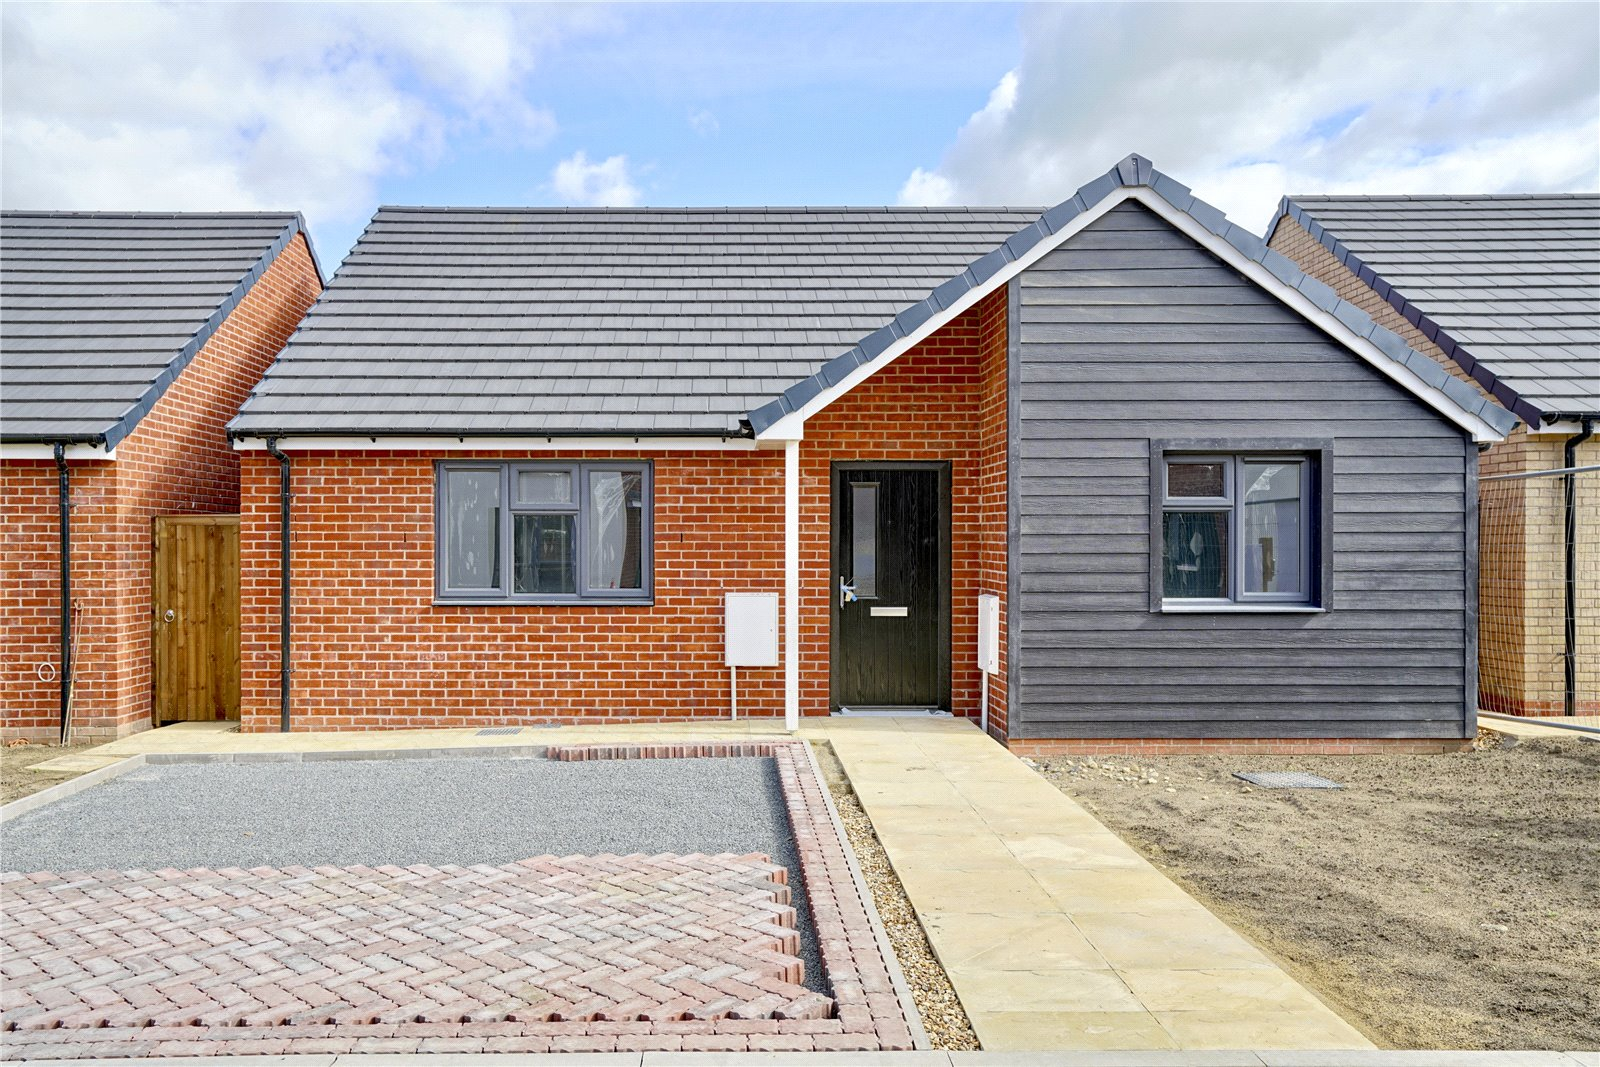 3 bed bungalow for sale in Whittlesey, PE7 1RU  - Property Image 1